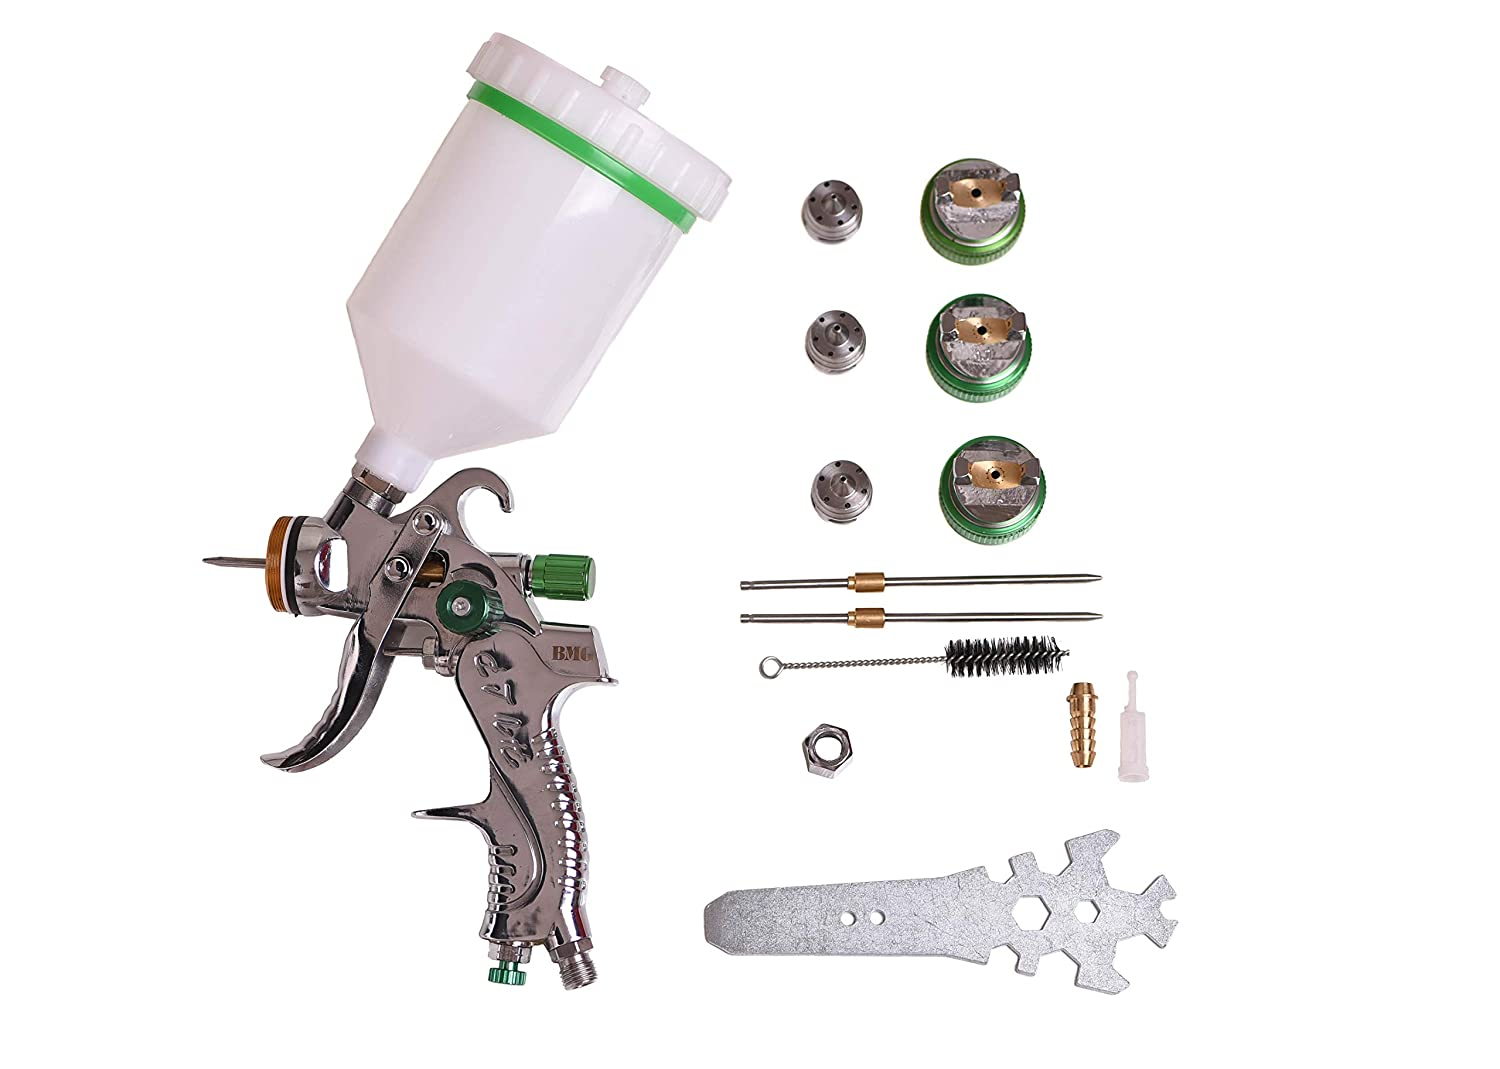 BMG HVLP Gravity Feed Spray Gun Tool Kit with 600cc Cup 1.4mm 1.7mm and 2.0 Nozzles